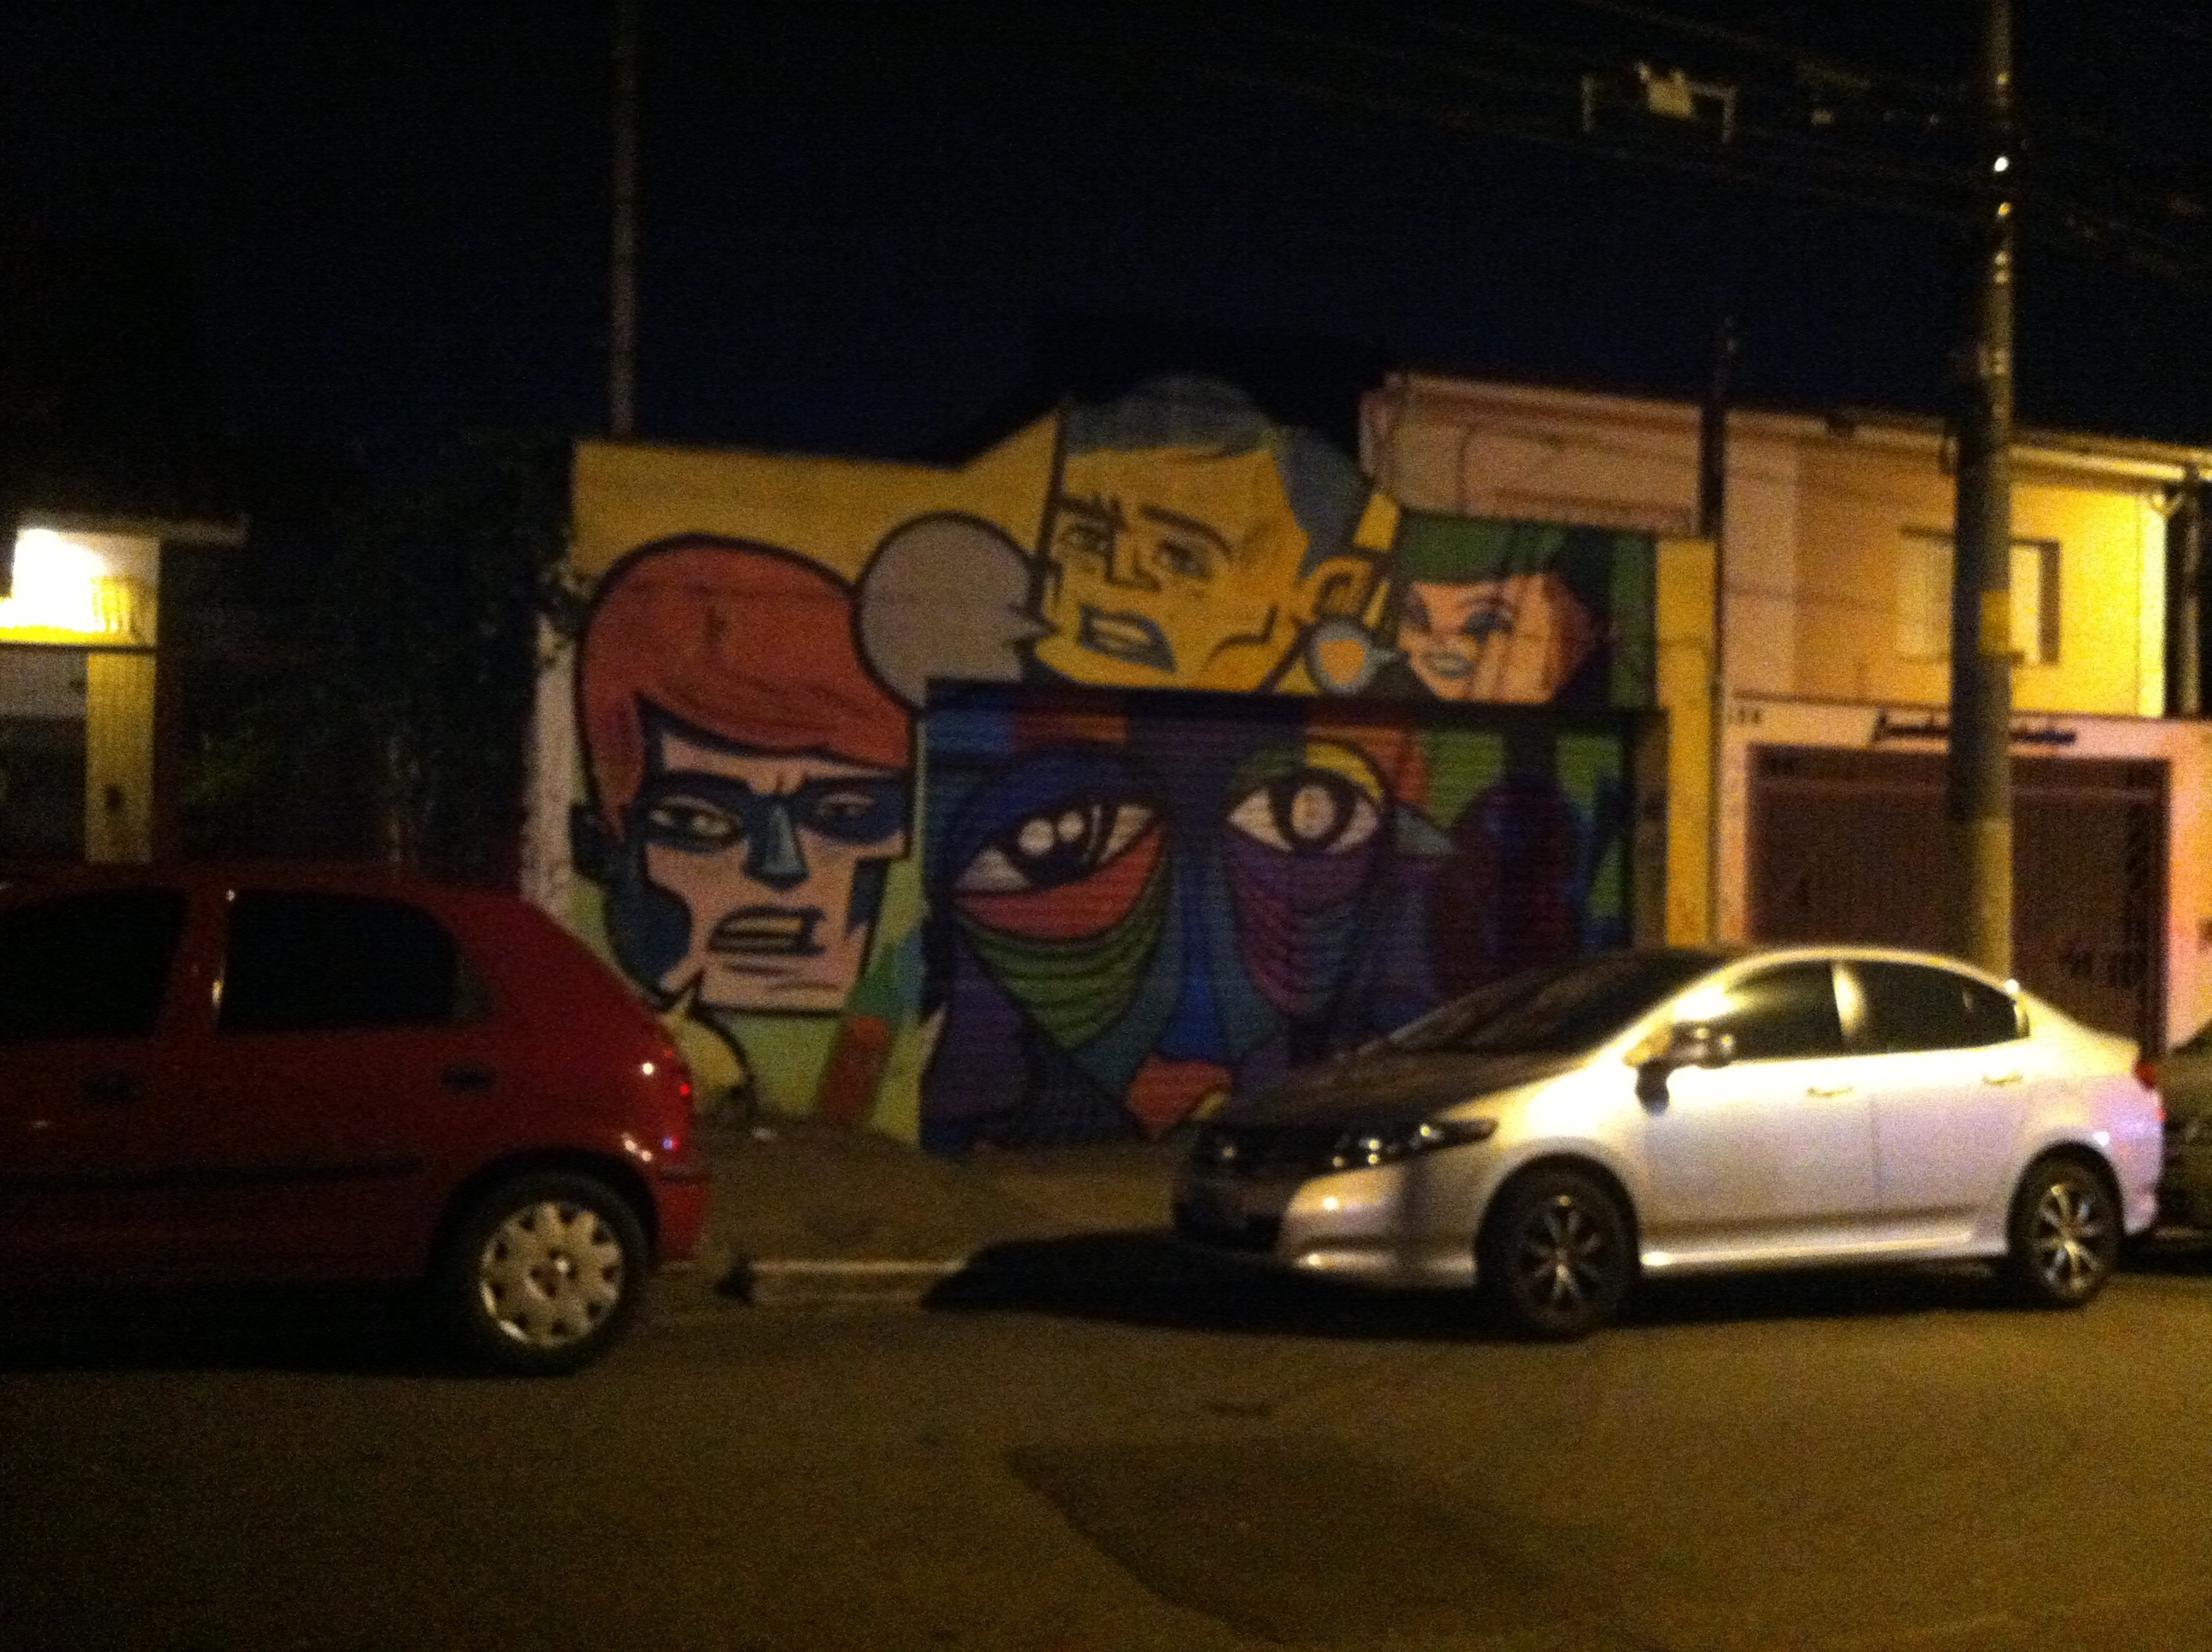 UPDATE: On my last day in Sao Paulo, roomie, classmate, friend Andrew and I went searching for the street (name escapes me) that was known for street art before samba.  We found it!